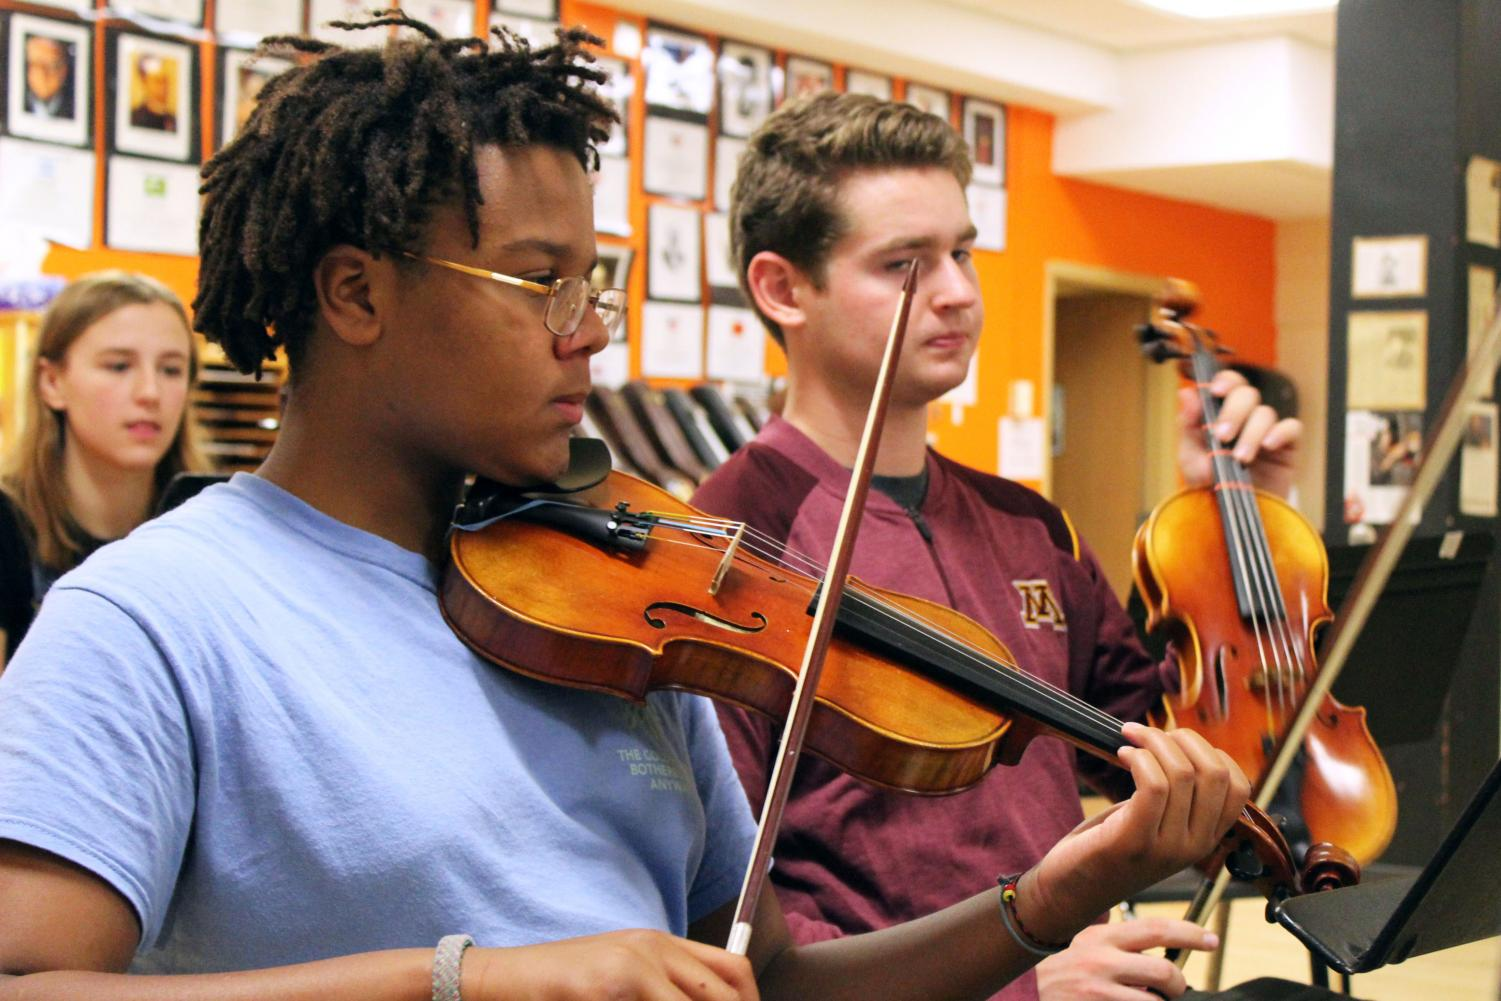 Freshman Meshach Mandel pulls his bow across the strings on his violin during third hour Sept. 20. Orchestra is working toward its Halloween concert Oct. 30.